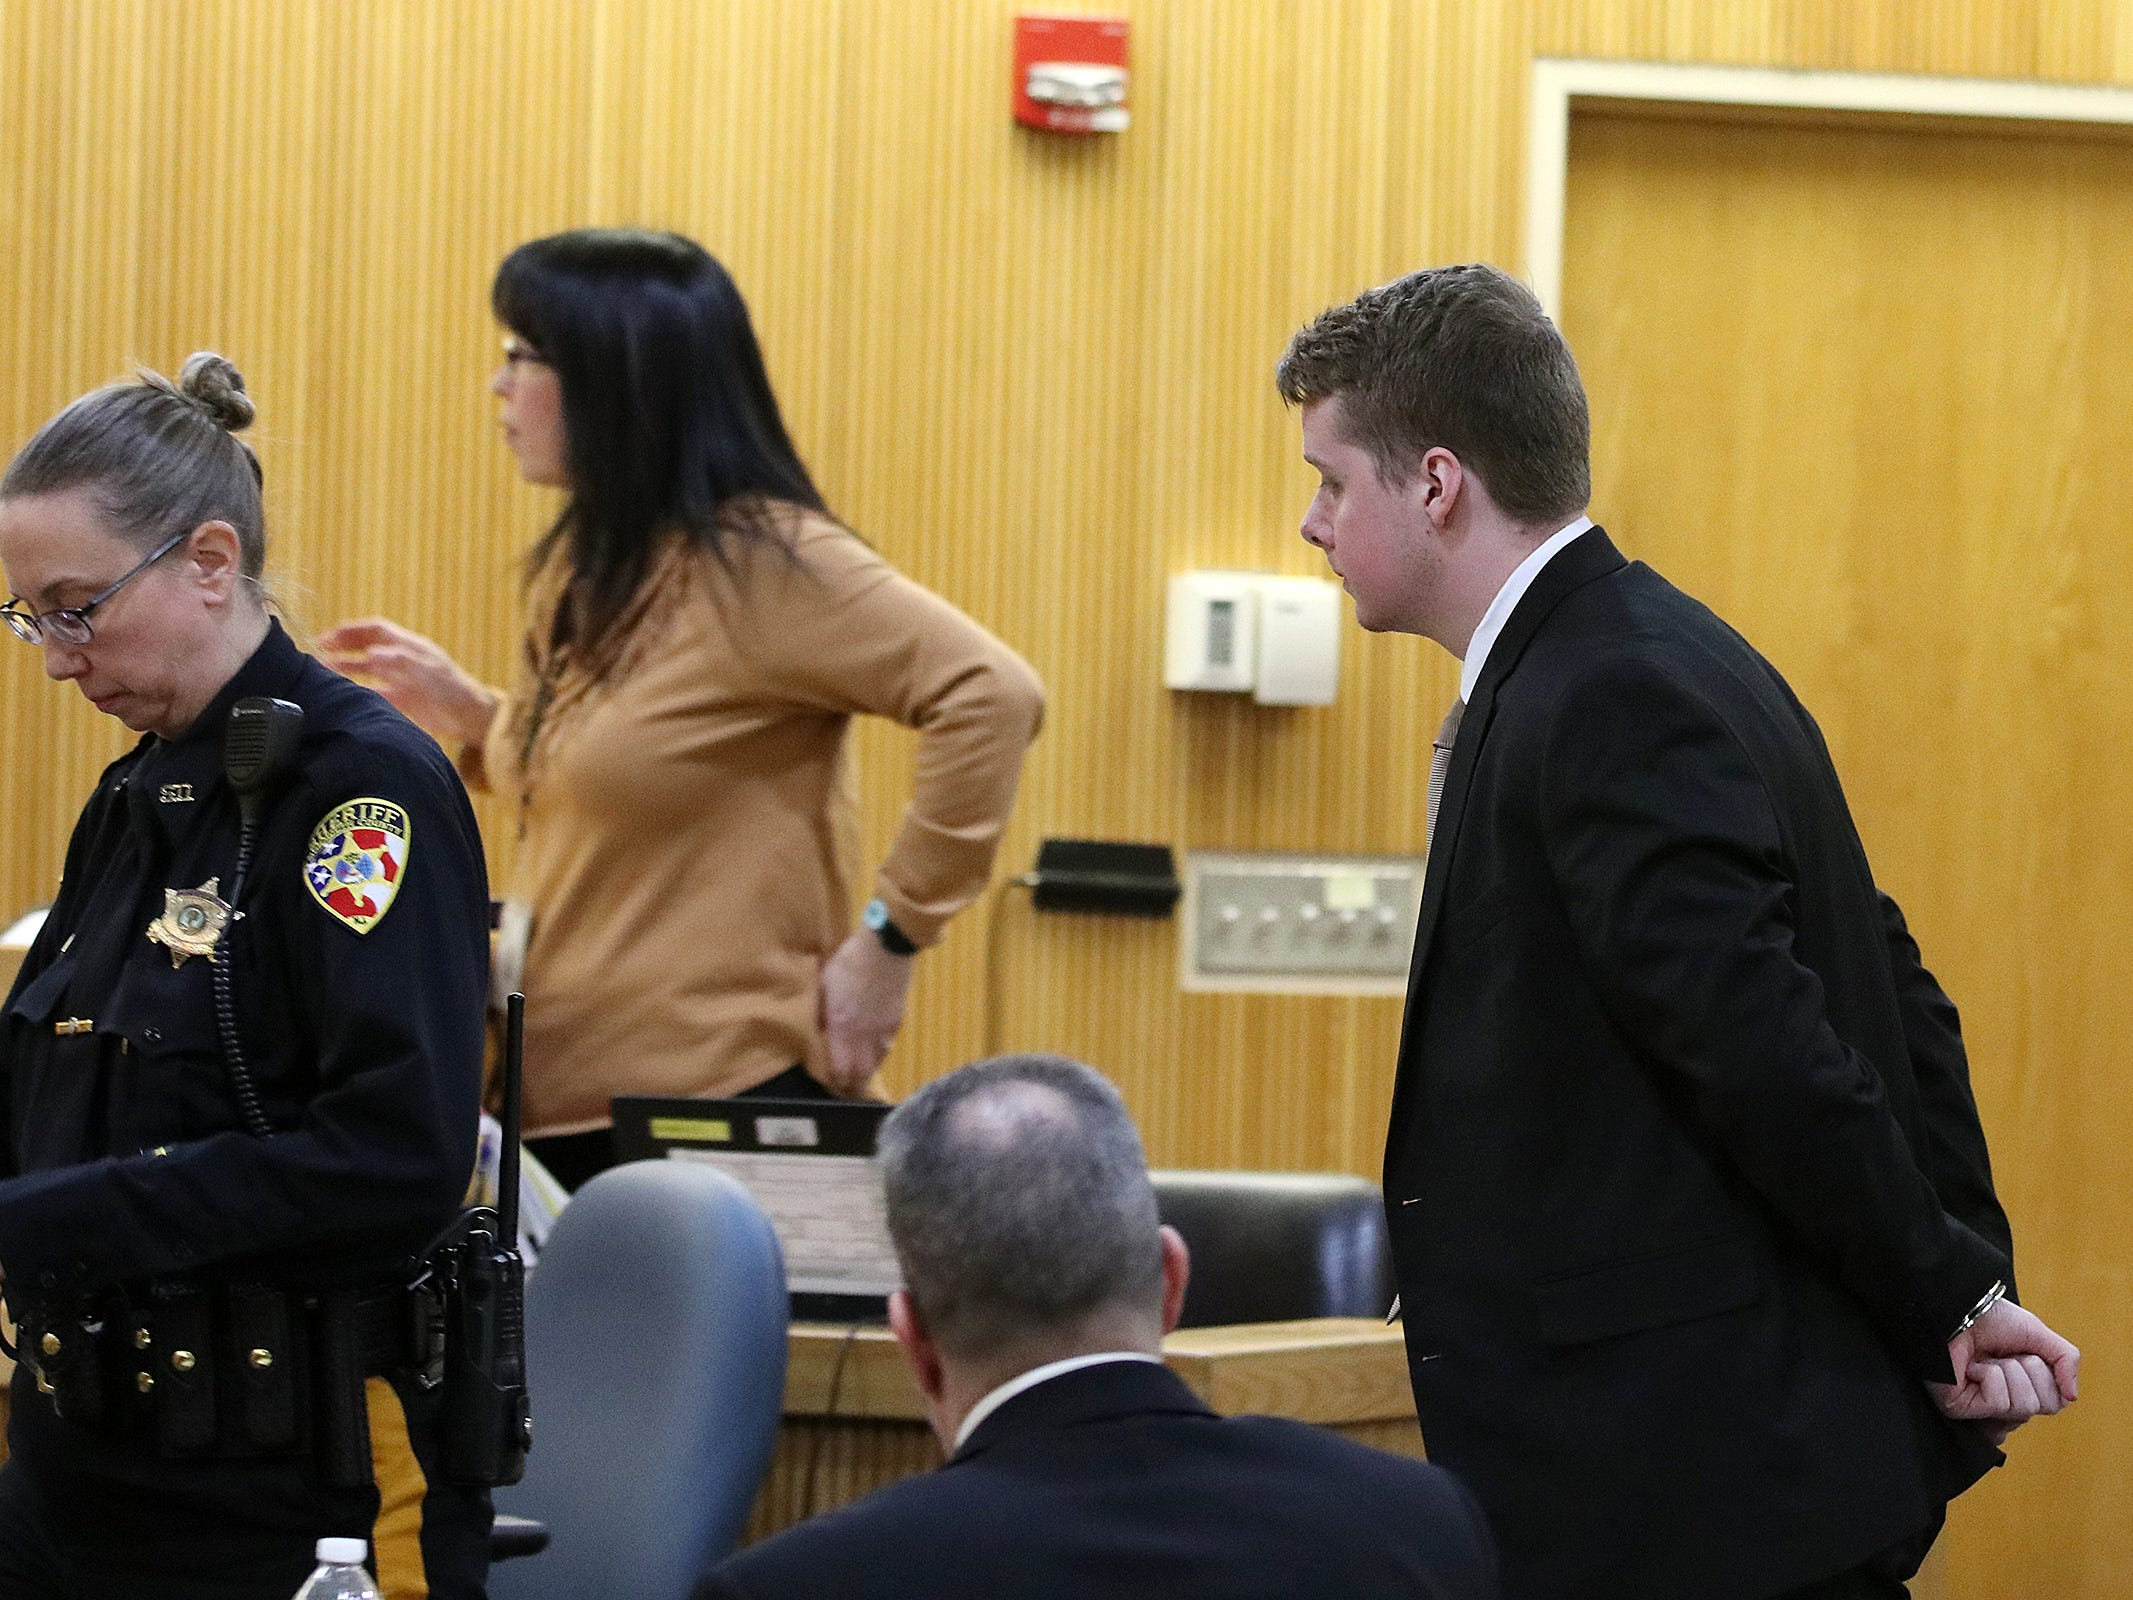 Liam McAtasney, who was found guilty of all charges in the murder of former high school classmate, Sarah Stern, is lead out of the courtroom in handcuffs after the verdict was read before Superior Court Judge Richard W. English at the Monmouth County Courthouse in Freehold, NJ Tuesday, February 26, 2019.